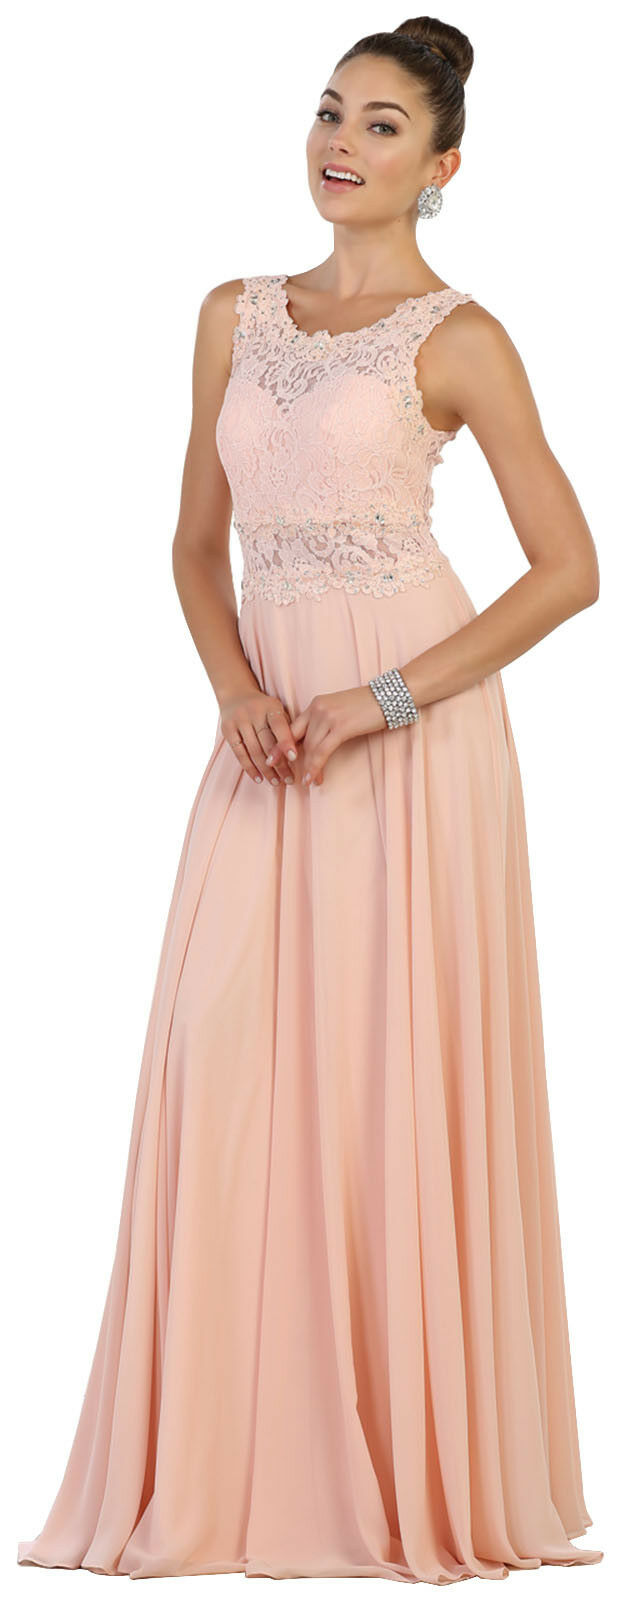 RED CARPET SPECIAL OCCASION DRESS FORMAL PAGEANT PROM EVENING GOWN BRIDESMAIDS